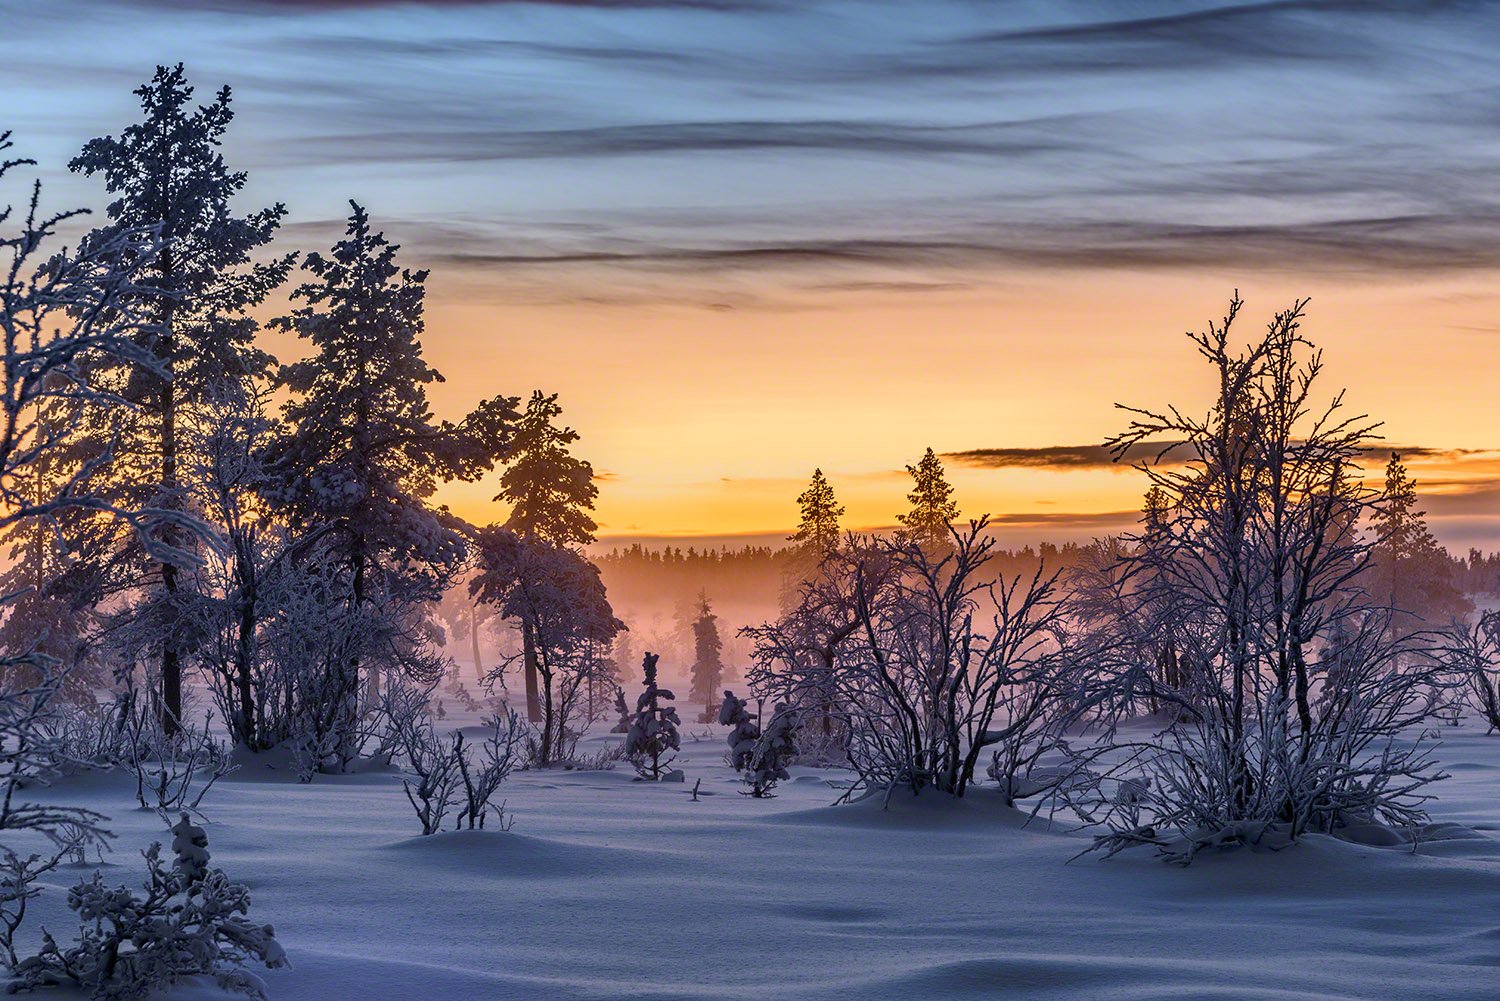 Winter photography during the polar night in Lapland, Finland.